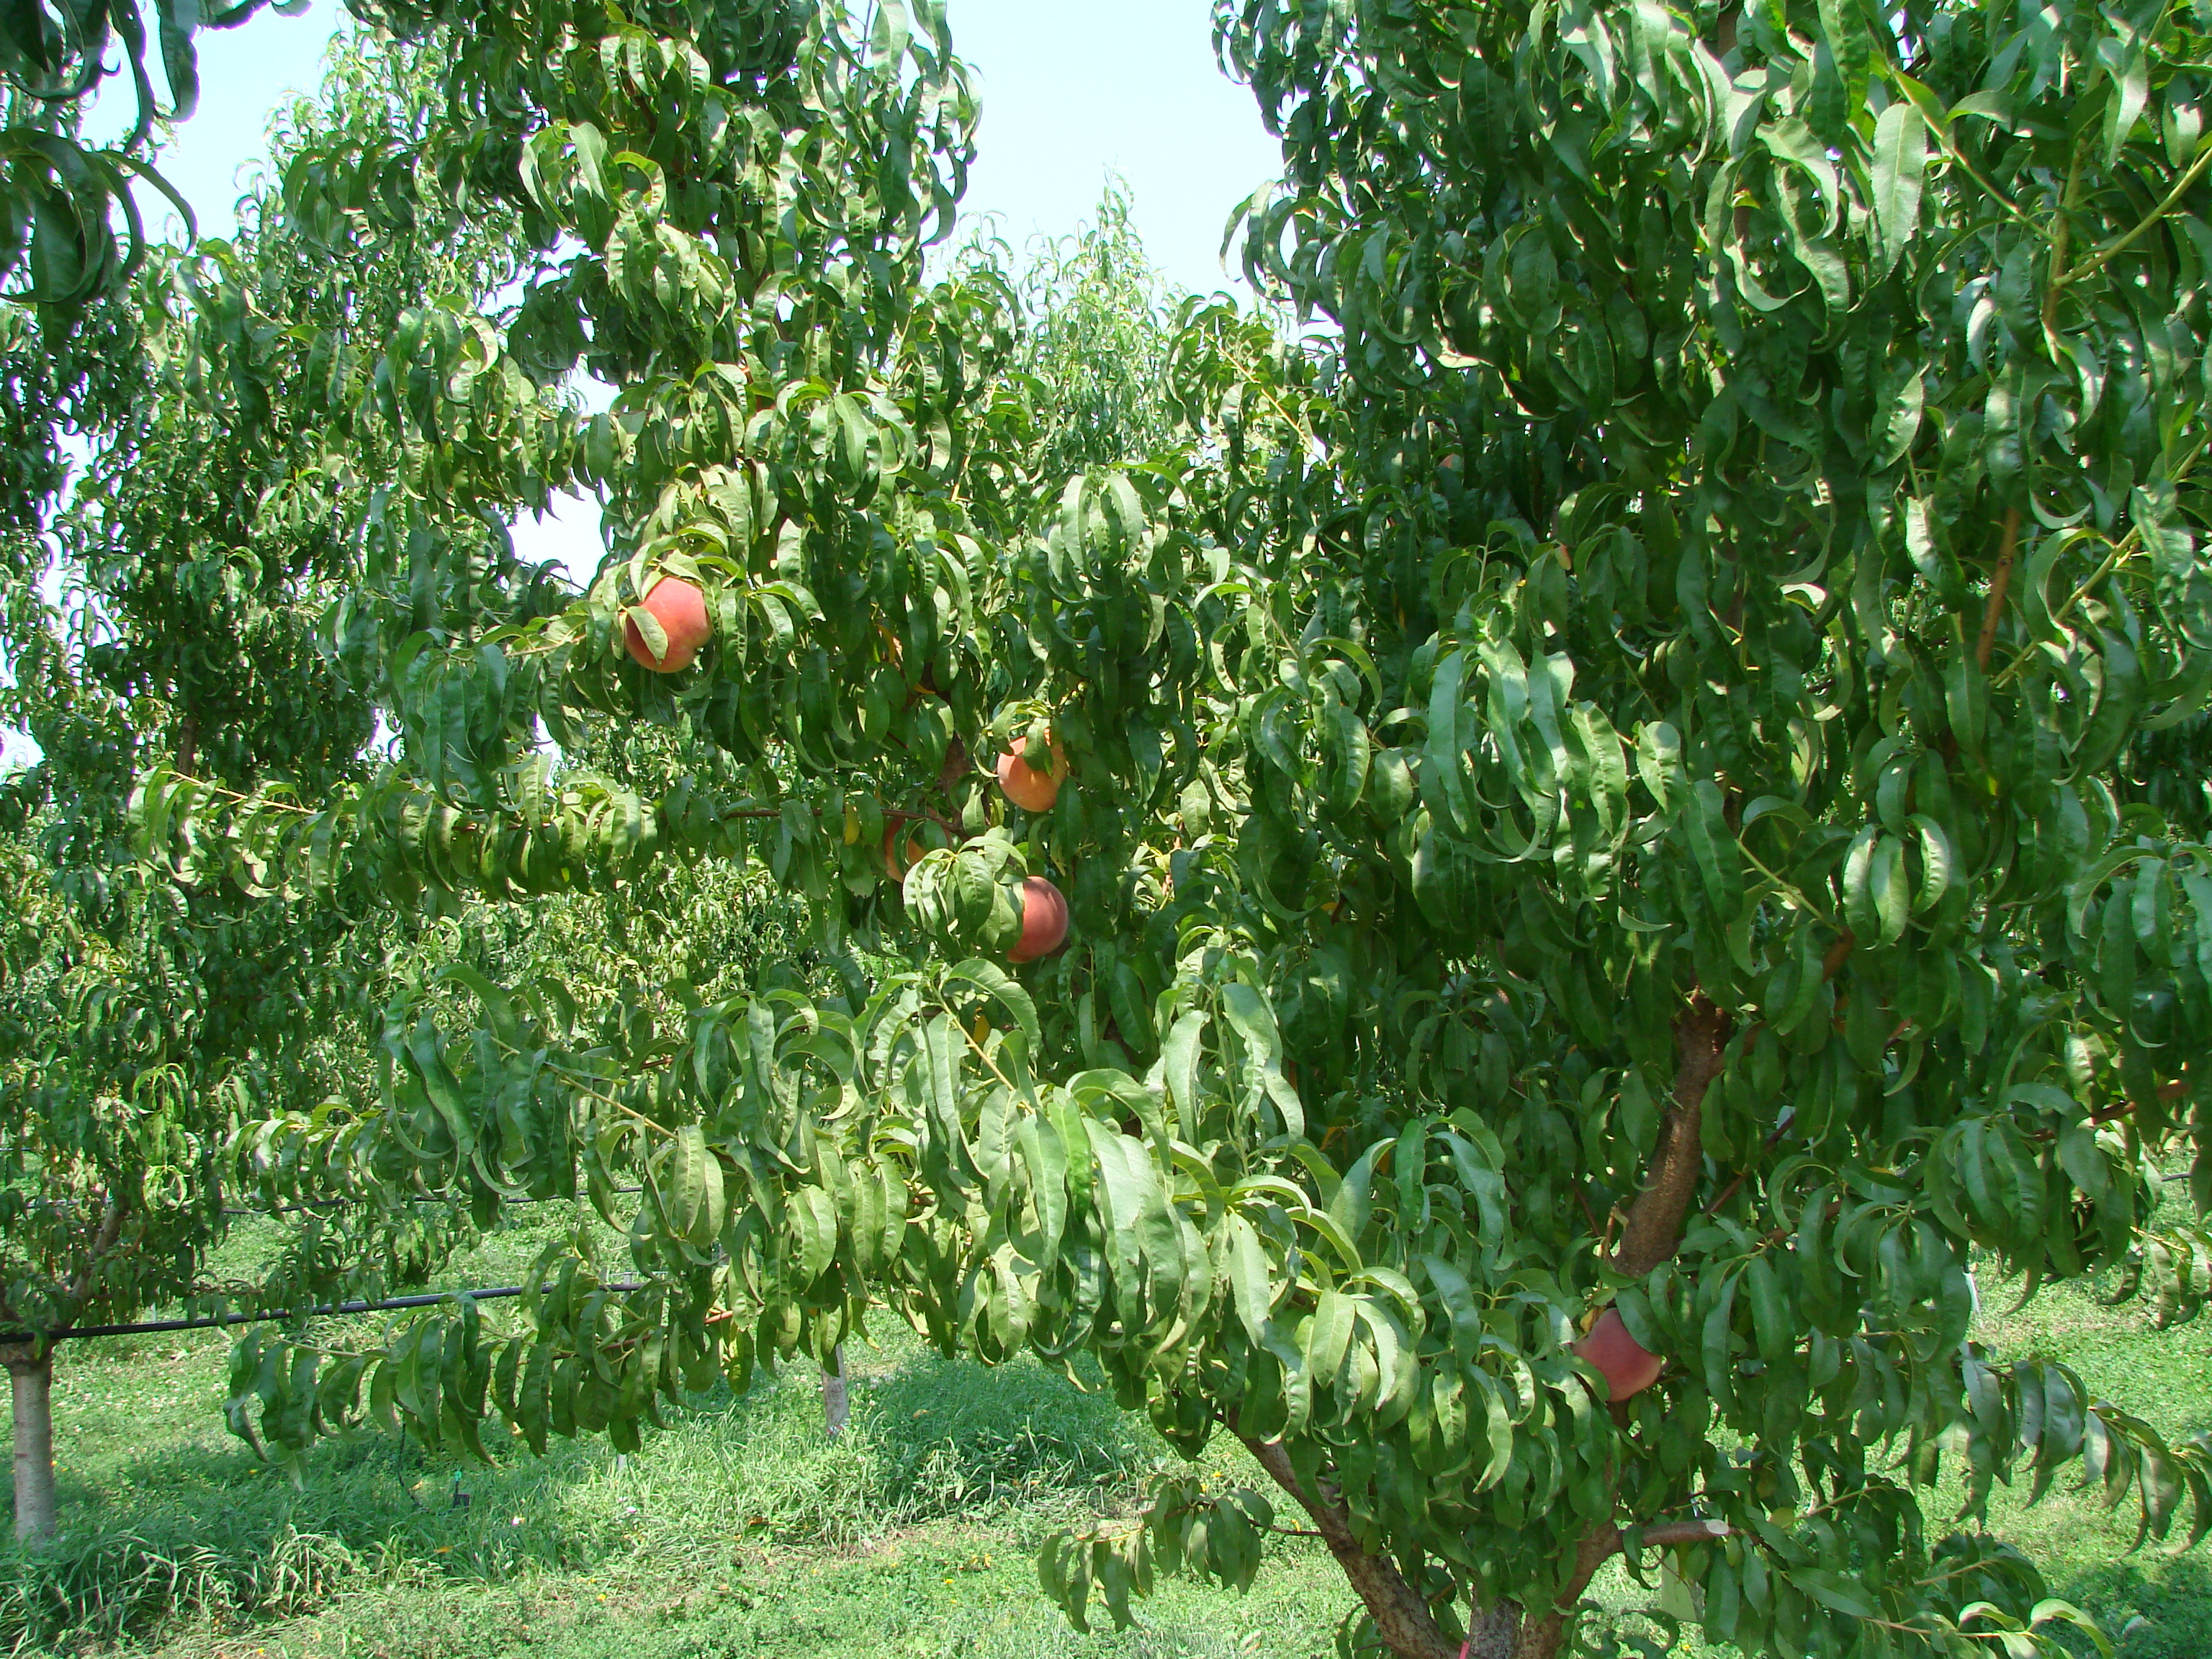 fruit tree with visable fruit